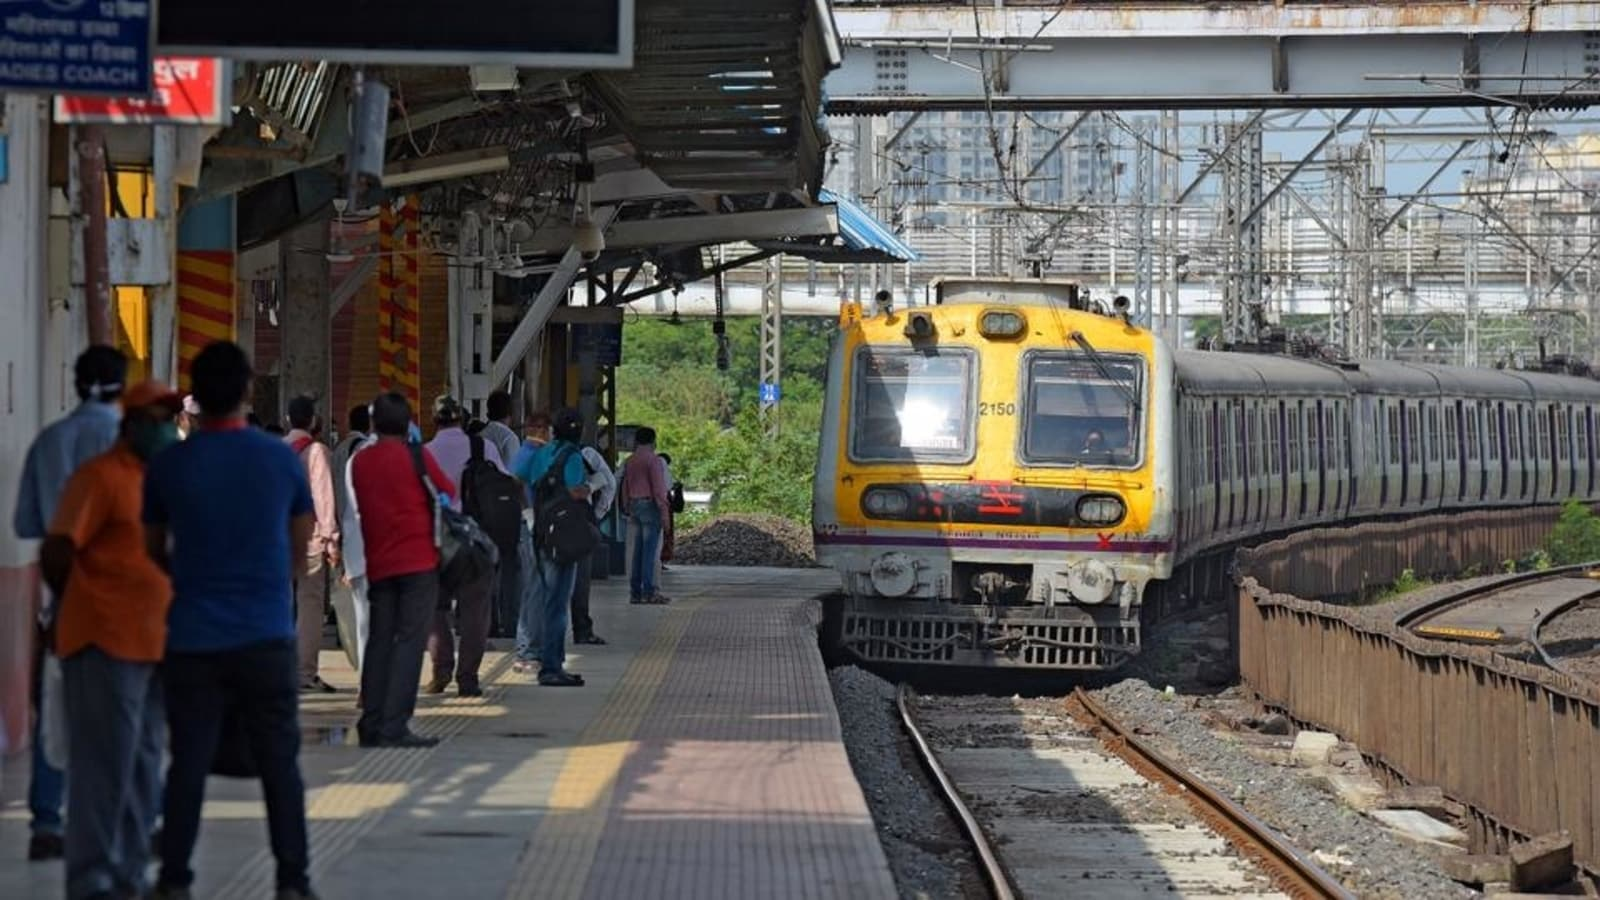 Mumbai: Local trains back on track with full capacity, restrictions unchanged